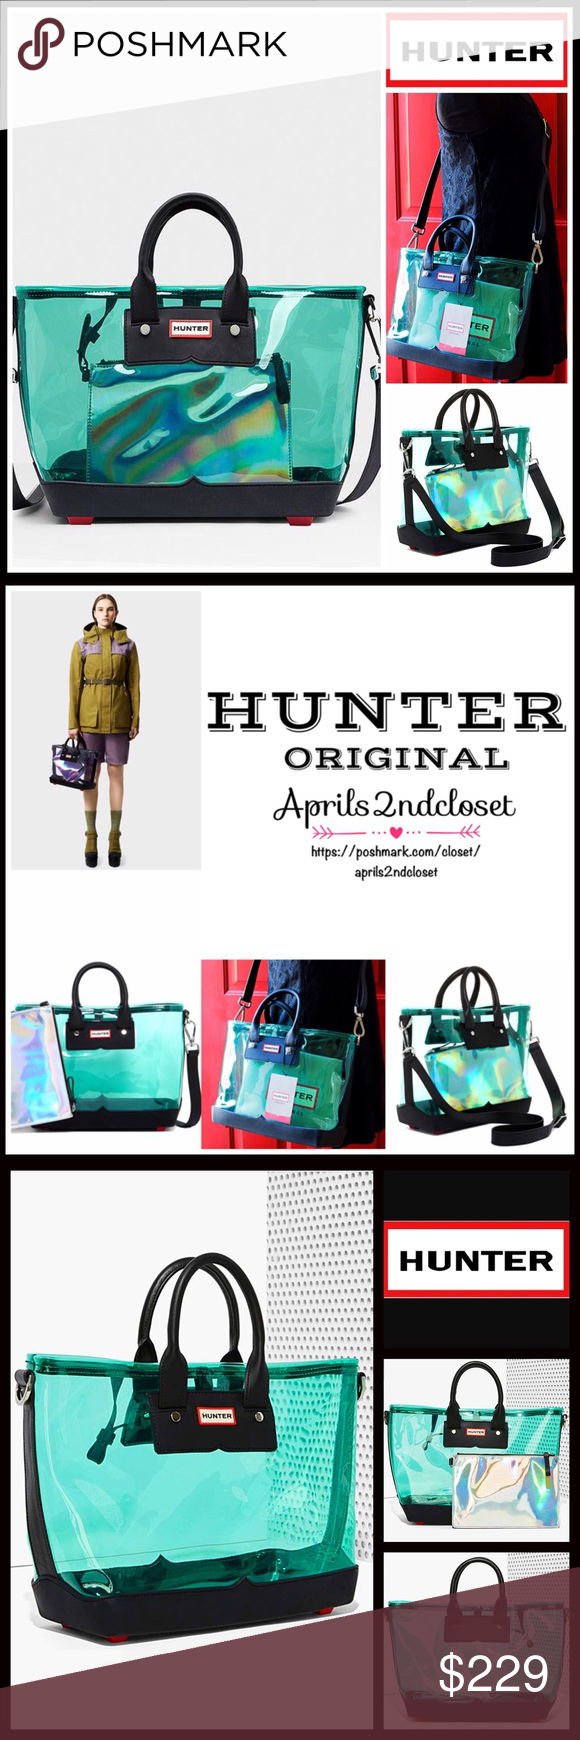 925ca3f594a HUNTER Original Clear Crossbody Tote 💟NEW WITH TAGS💟 AMAZING! HUNTER  Original Clear Midi